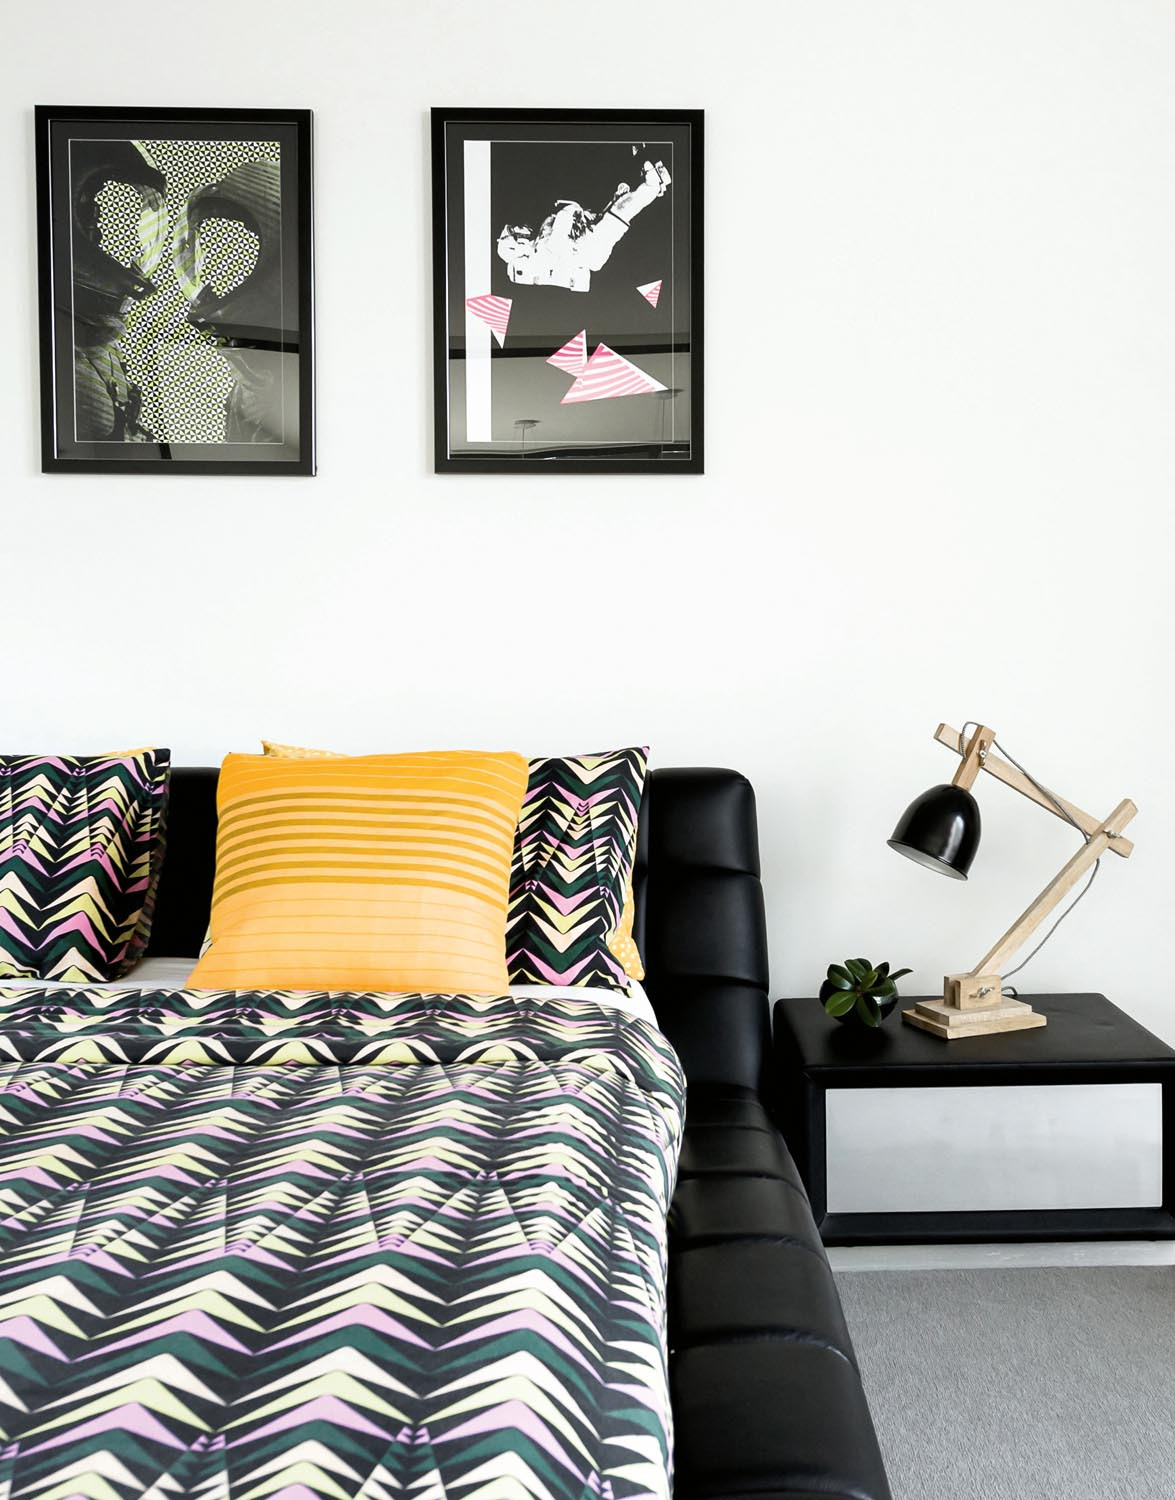 Strong contrasts and bold prints maintain the modern style in the master bedroom